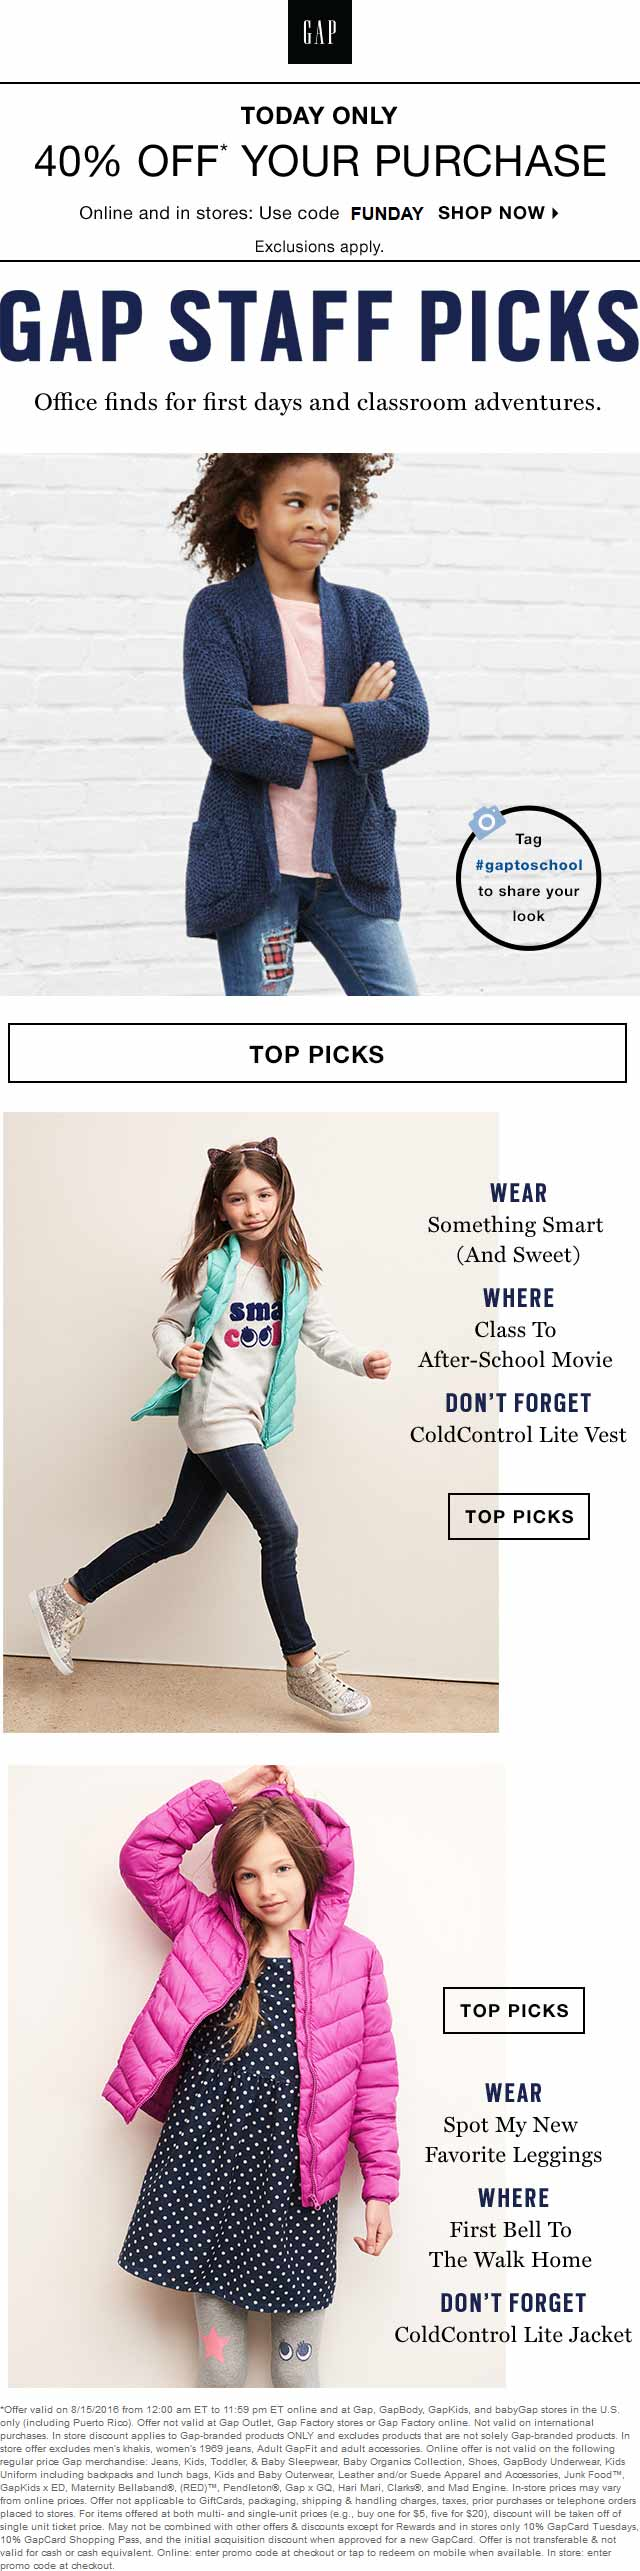 Gap Coupon October 2016 40% off today at Gap, or online via promo code FUNDAY